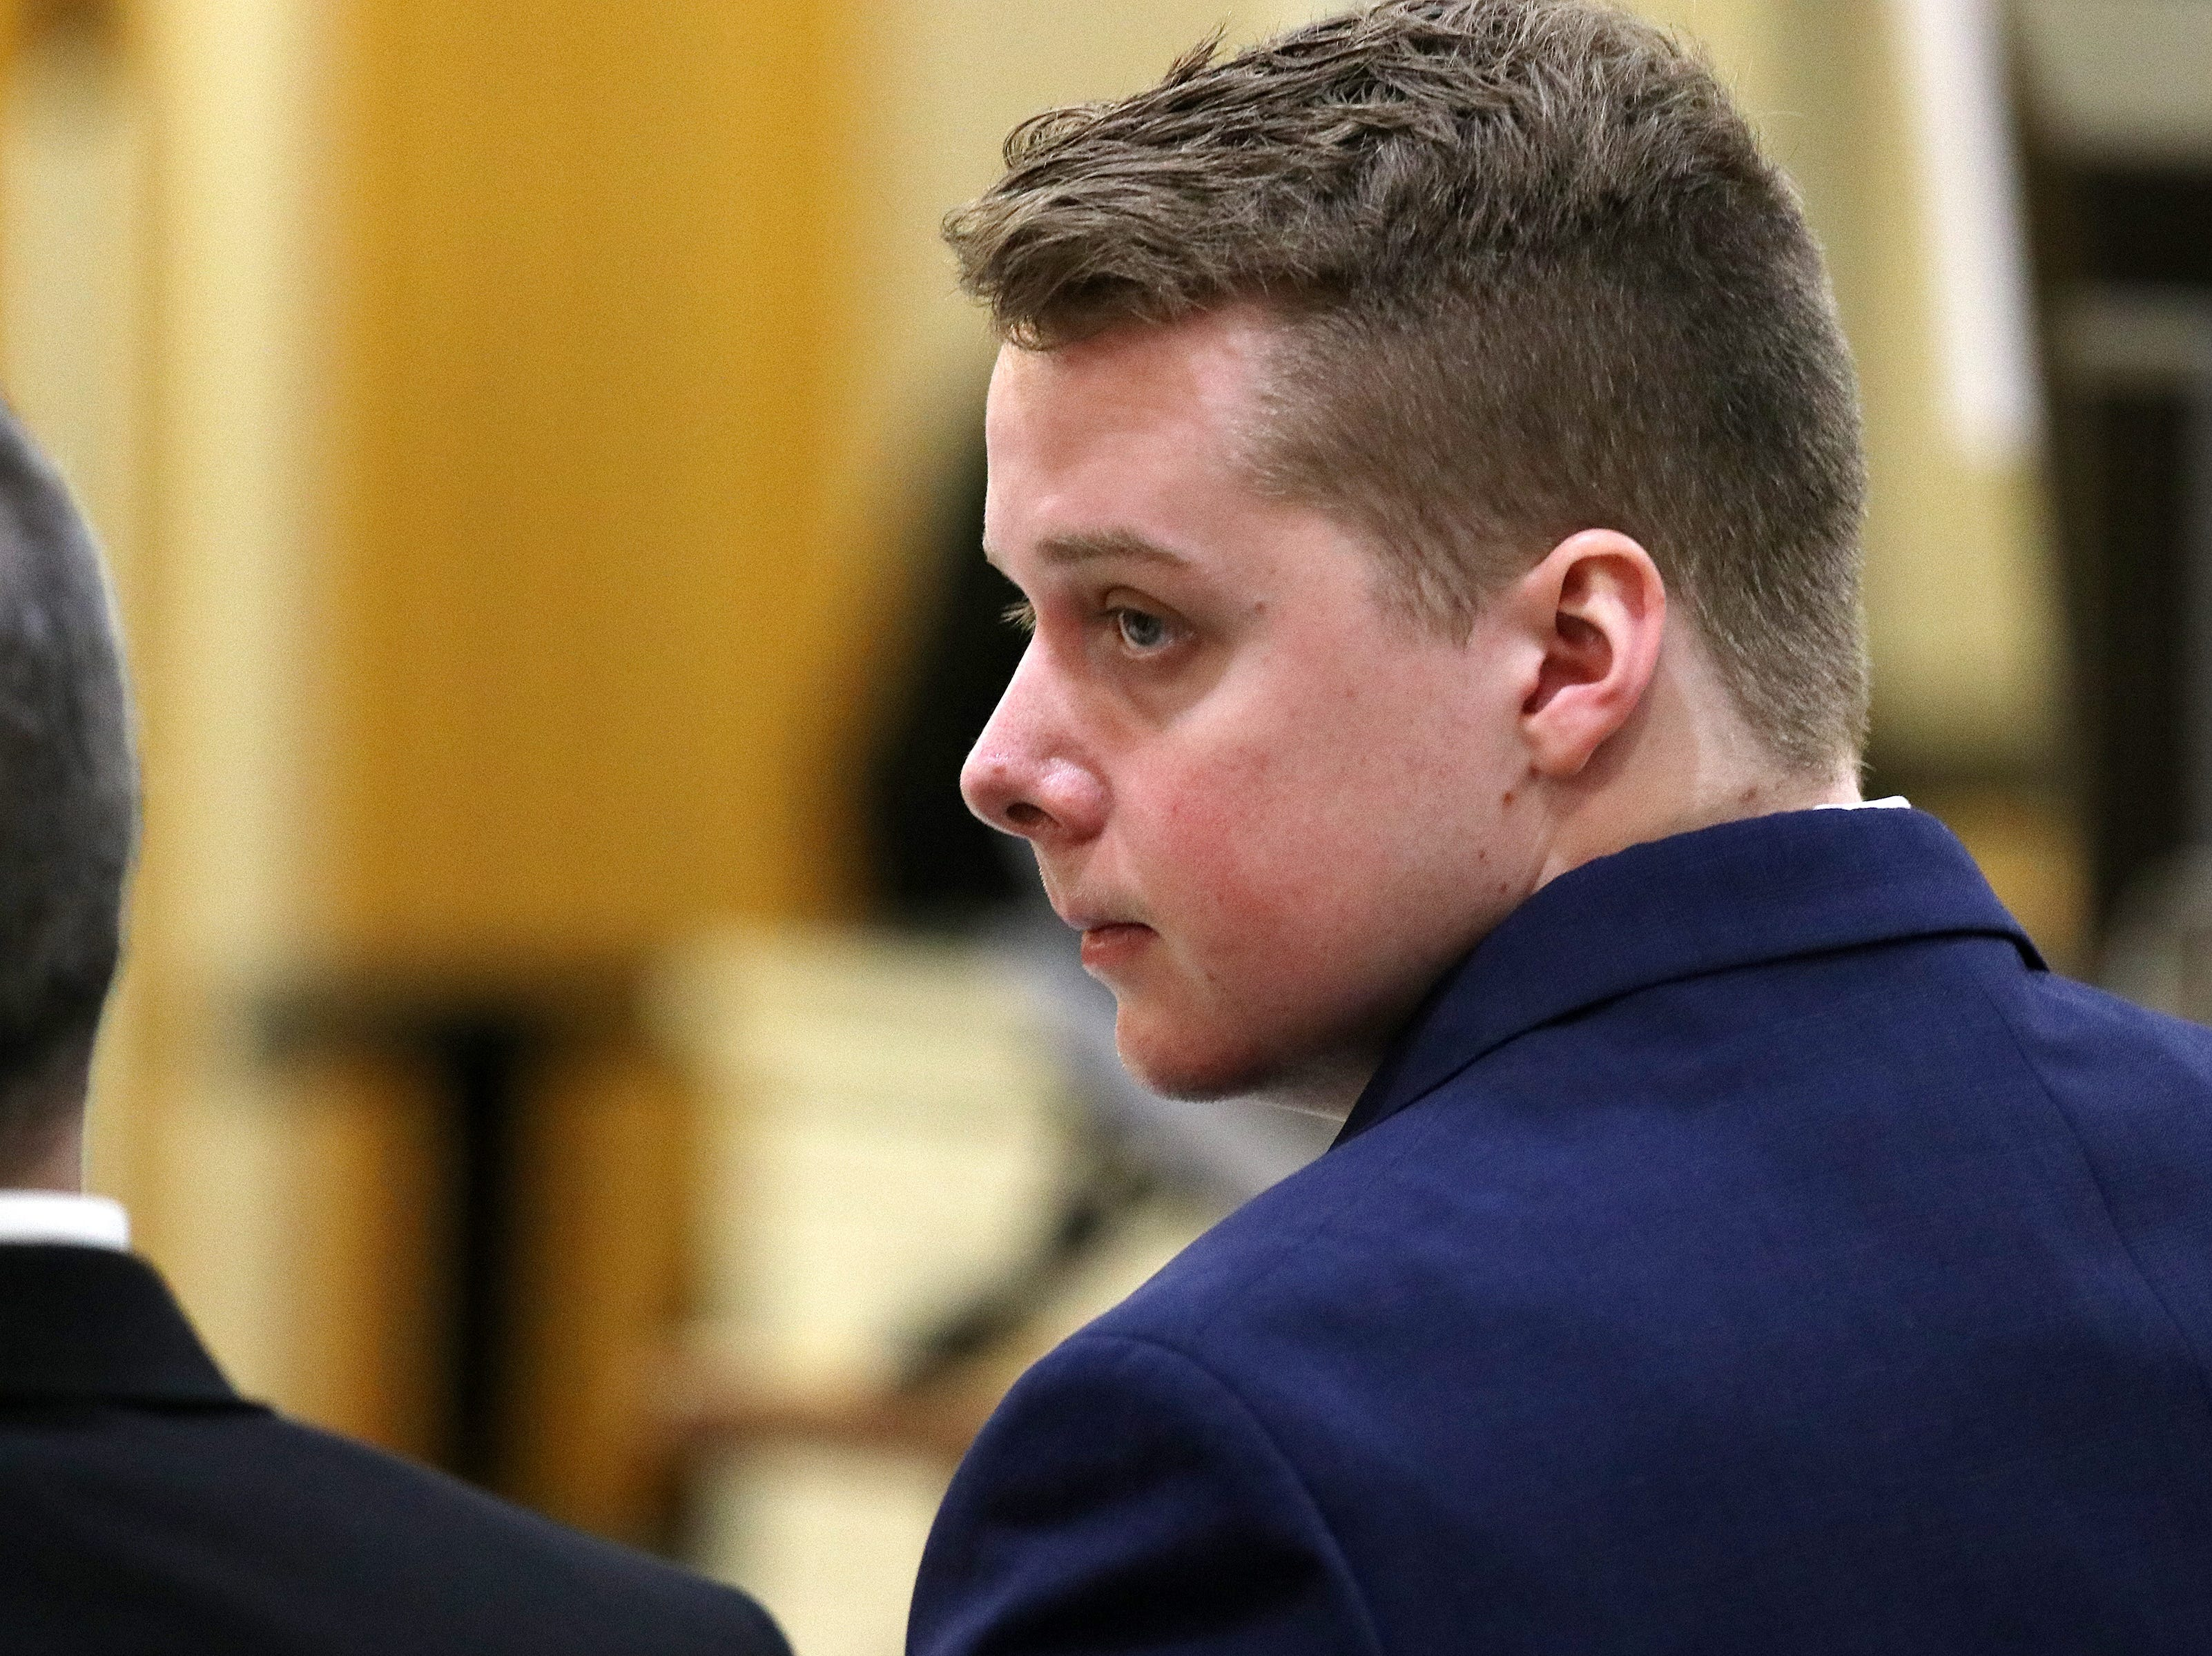 Liam McAtasney, who is charged with the murder of former high school classmate, Sarah Stern, looks at the jury during trial before Superior Court Judge Richard W. English at the Monmouth County Courthouse in Freehold, NJ Wednesday, February 6, 2019.